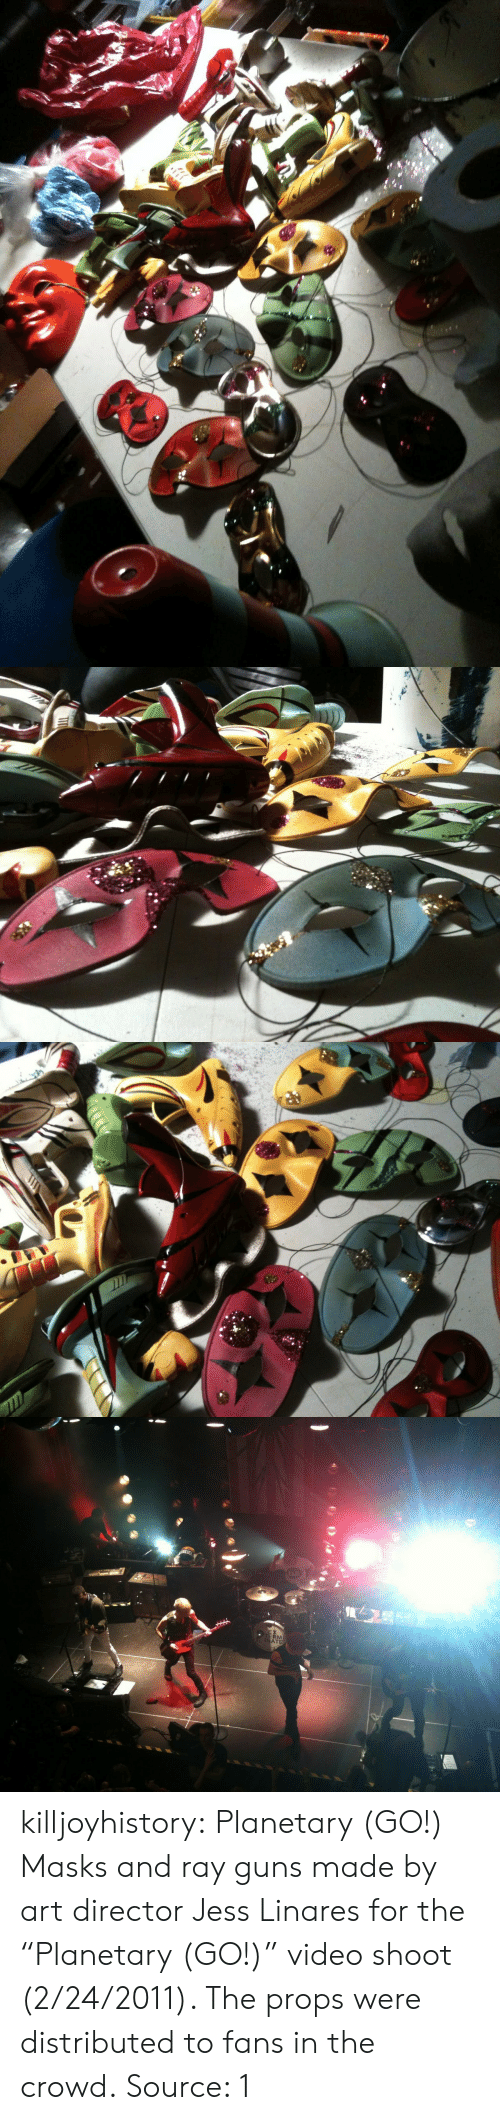 "masks: KM  ATE killjoyhistory:  Planetary (GO!) Masks and ray guns made by art director Jess Linares for the ""Planetary (GO!)"" video shoot (2/24/2011). The props were distributed to fans in the crowd. Source: 1"